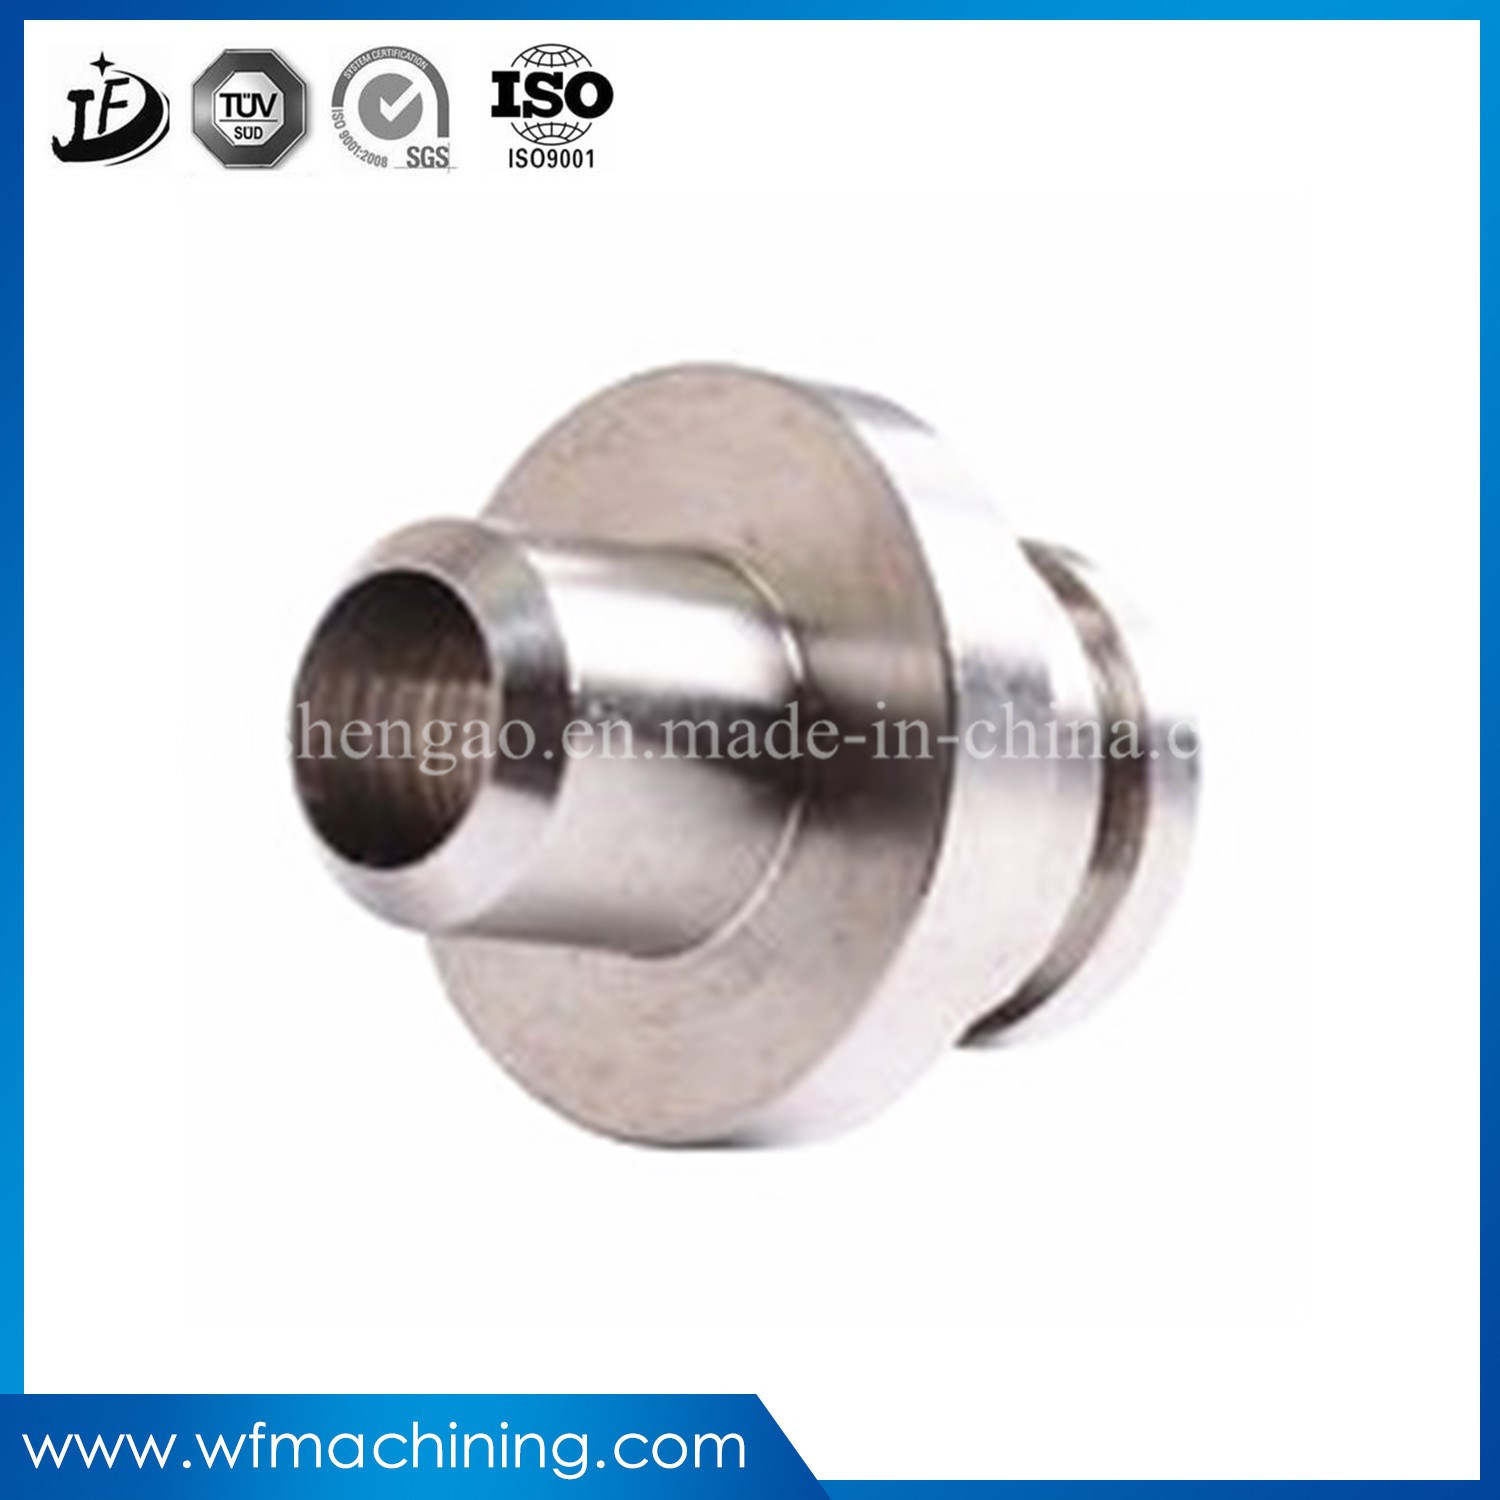 OEM Metal Components Lathe Machine Parts Precision CNC Machining for Pinion/Planetary Gear